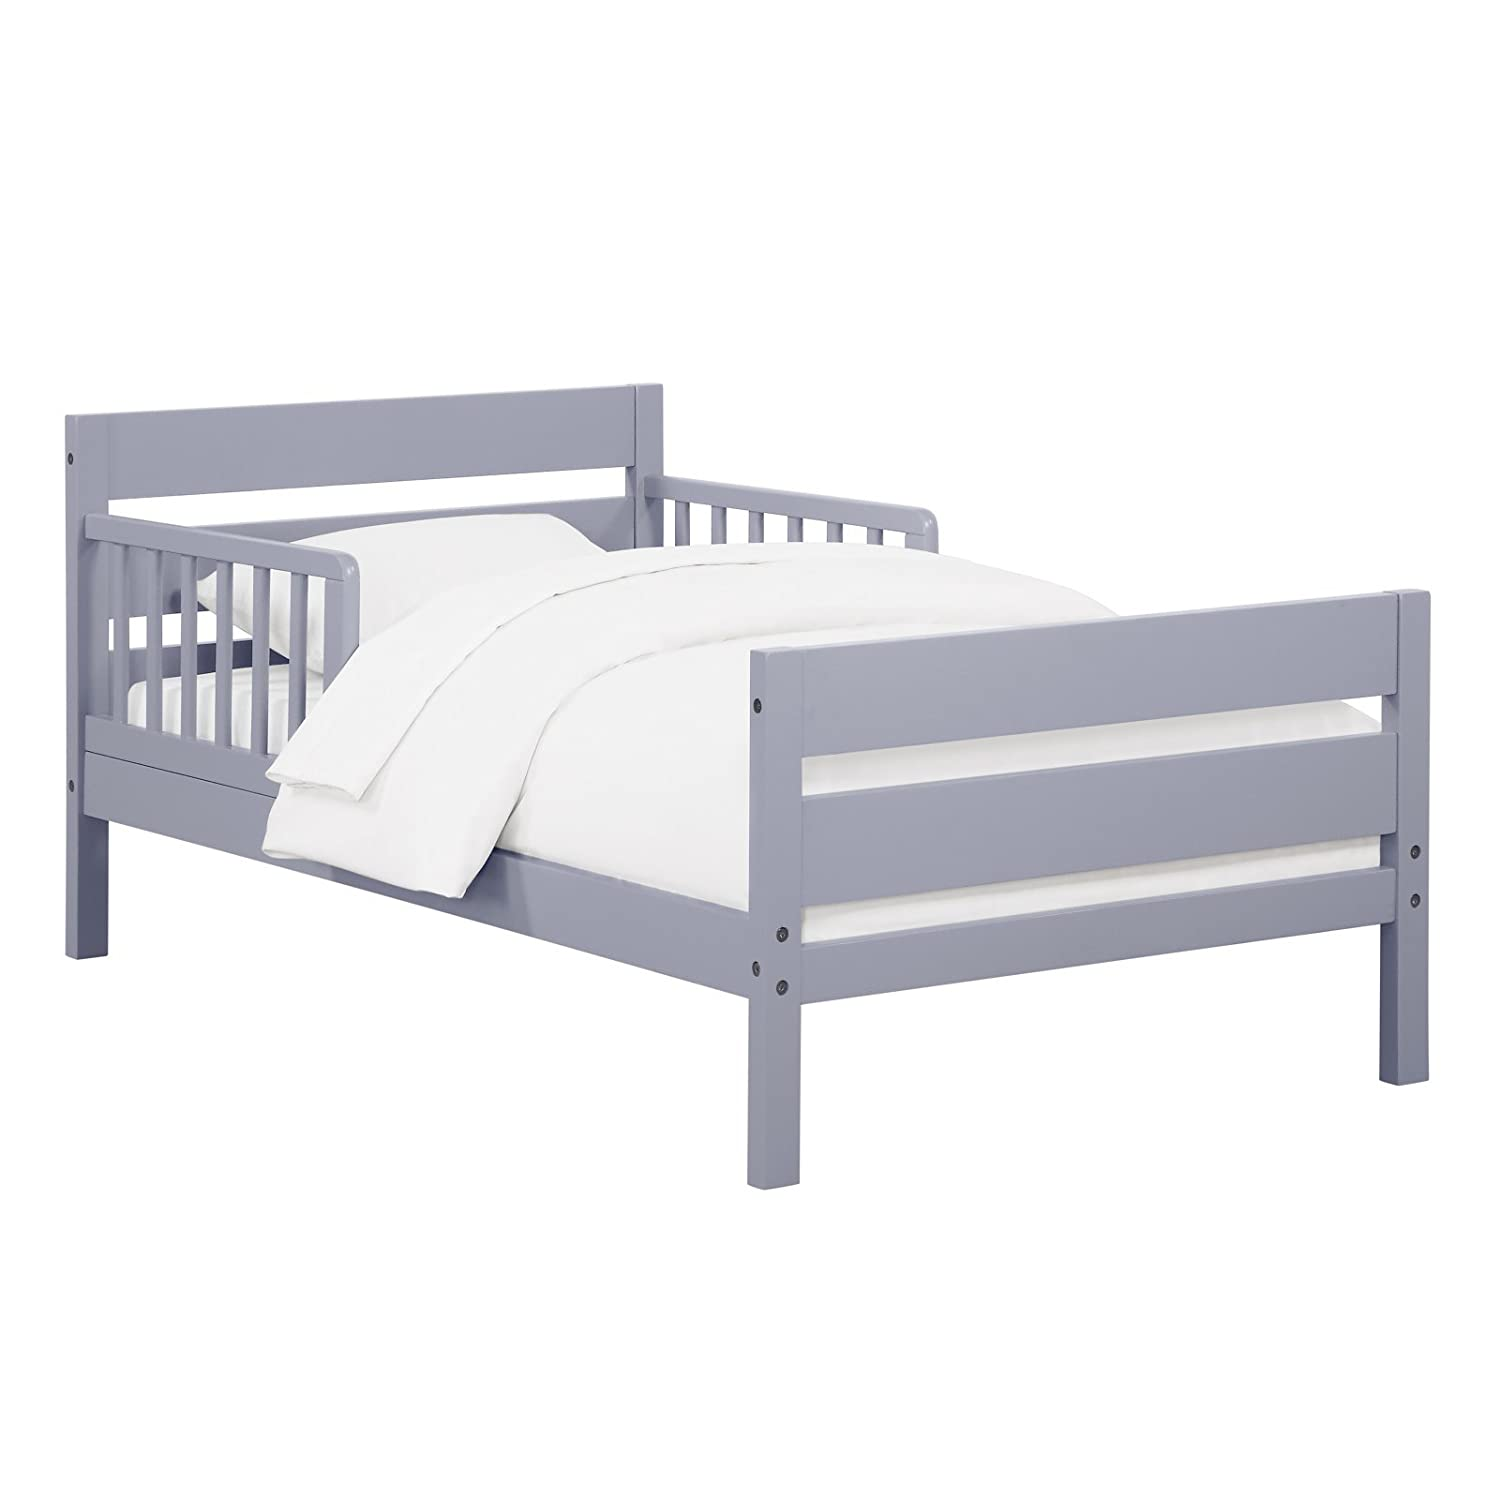 davinci view relax furniture ideas convertible l larger elizabeth bed toddler co sleeper beds kids baby ii